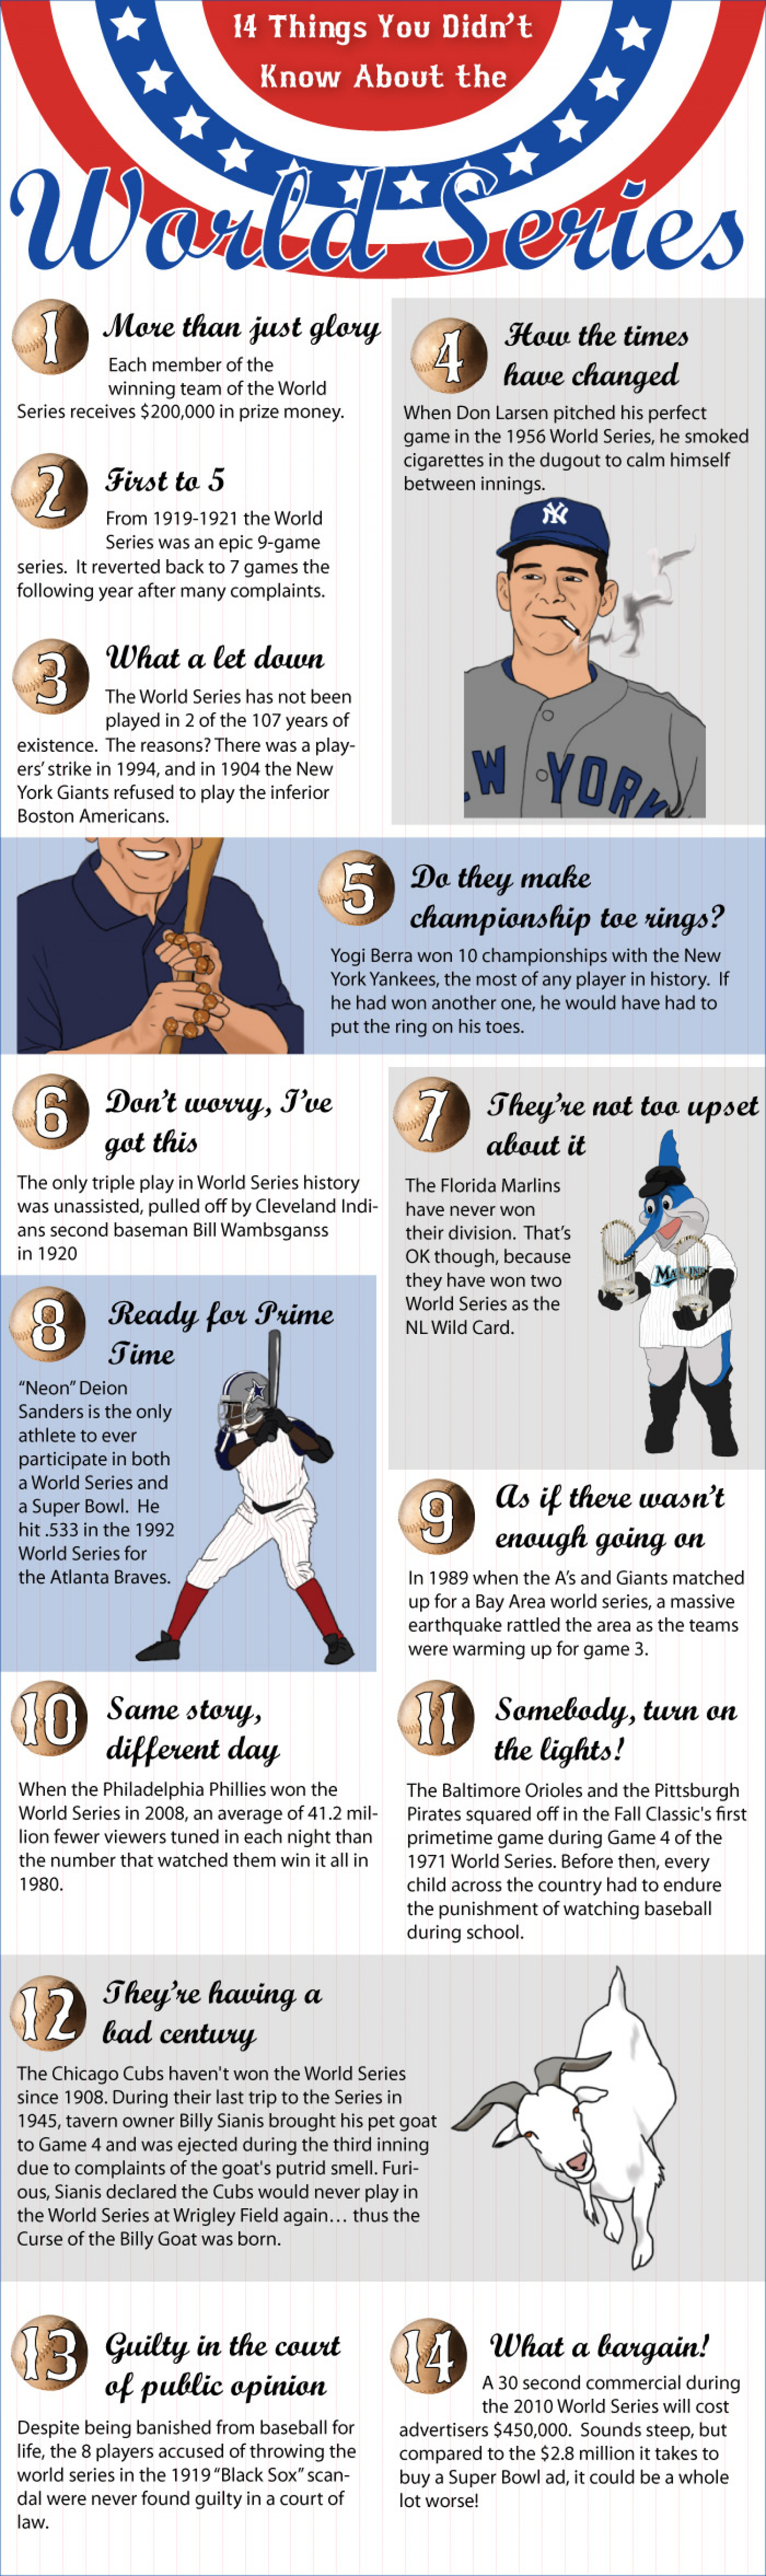 14 Things you didn't know about the world series Infographic